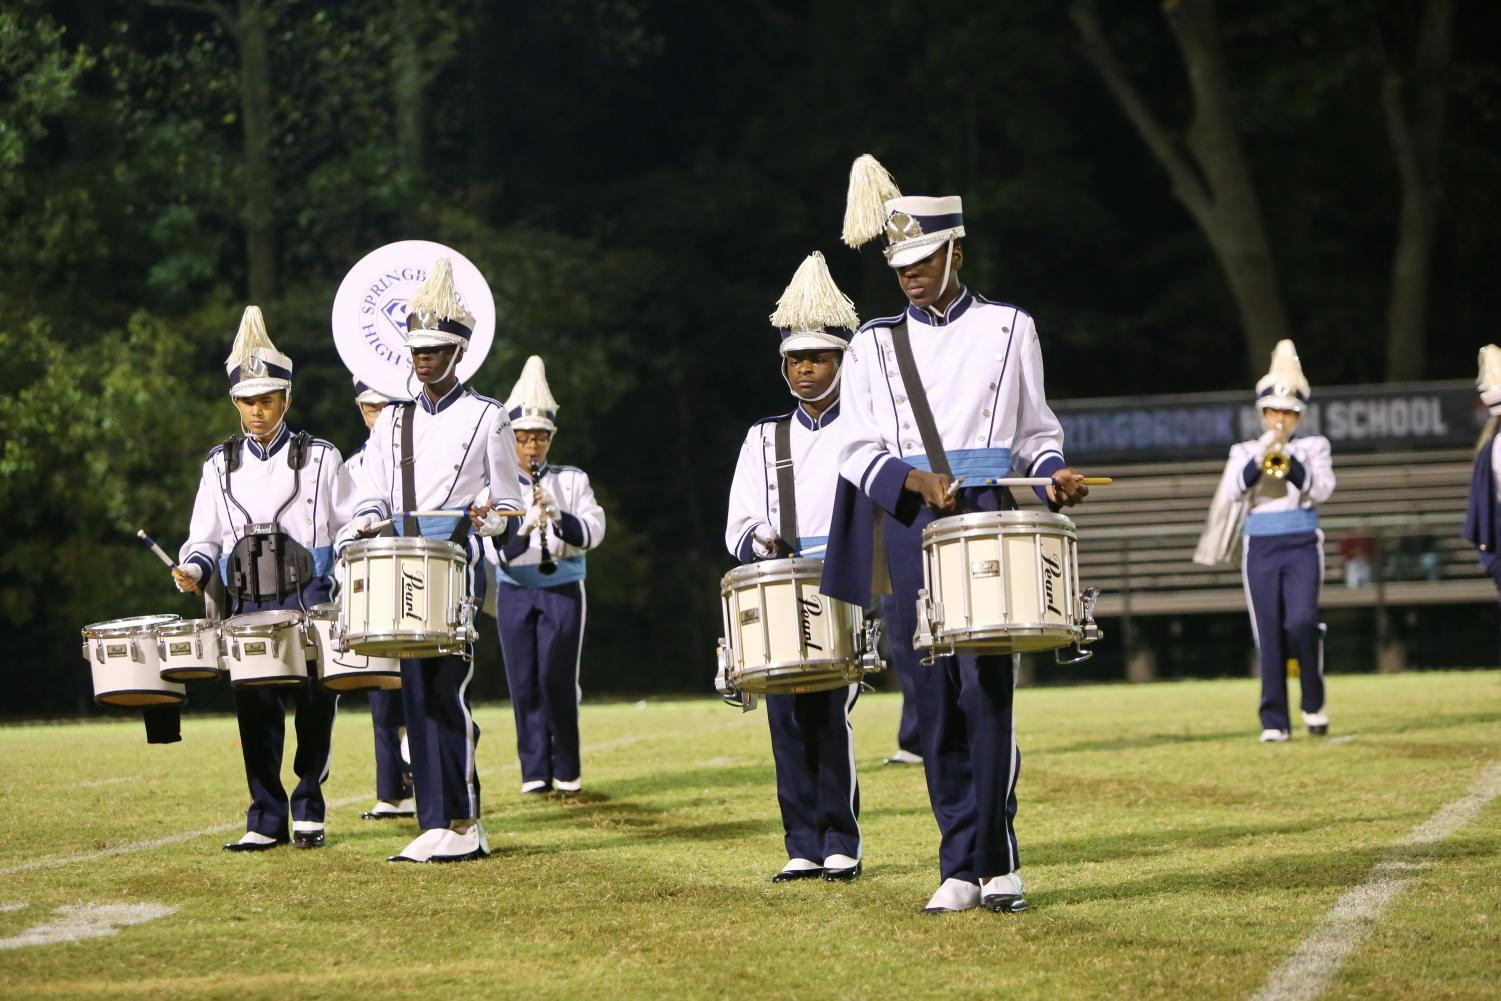 Springbrook's marching band performs at the Homecoming game.